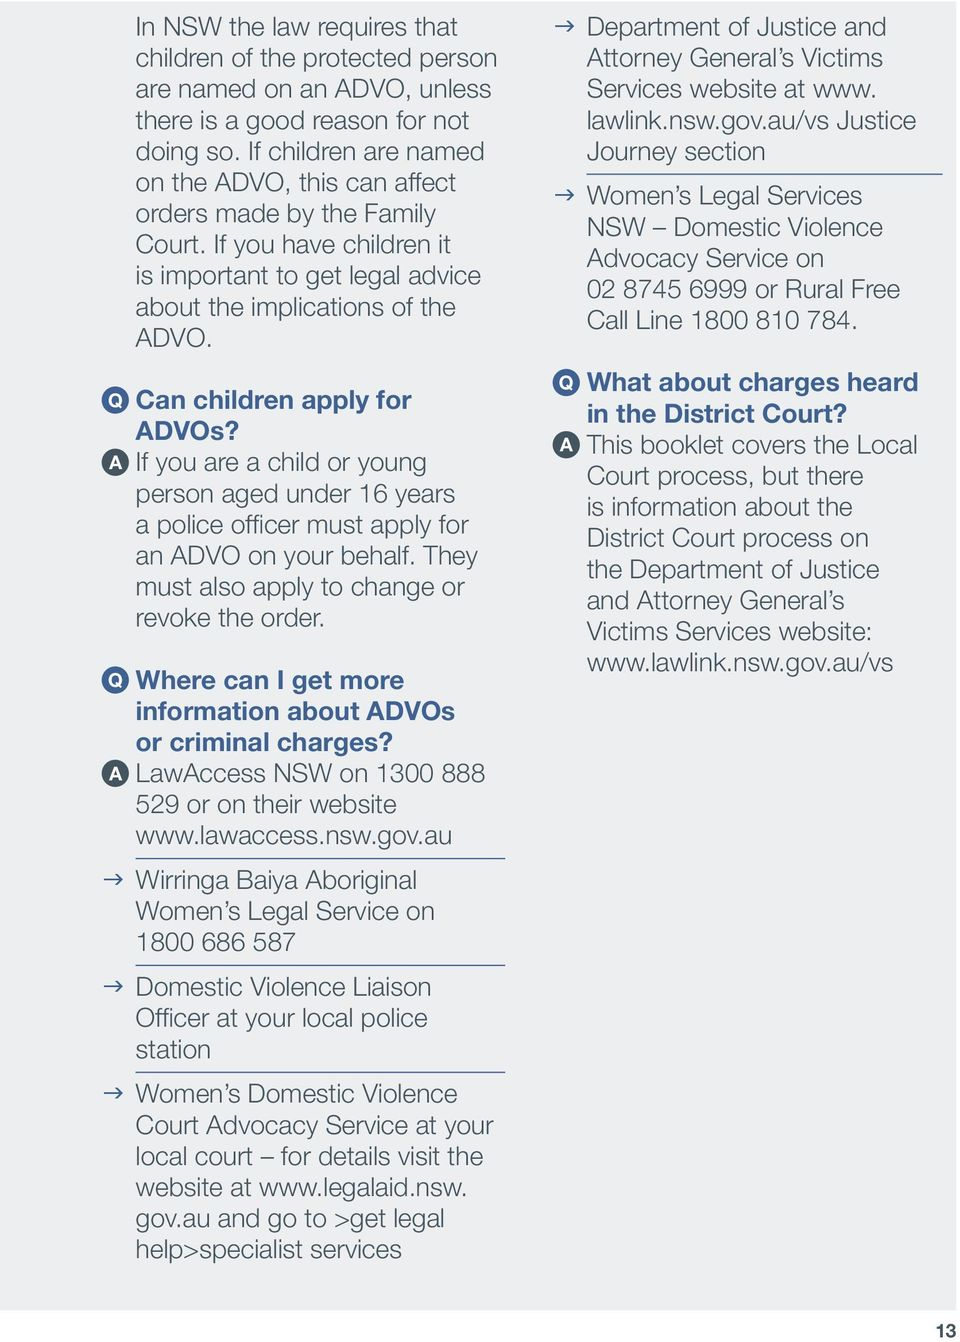 Q Can children apply for ADVOs? A If you are a child or young person aged under 16 years a police officer must apply for an ADVO on your behalf. They must also apply to change or revoke the order.